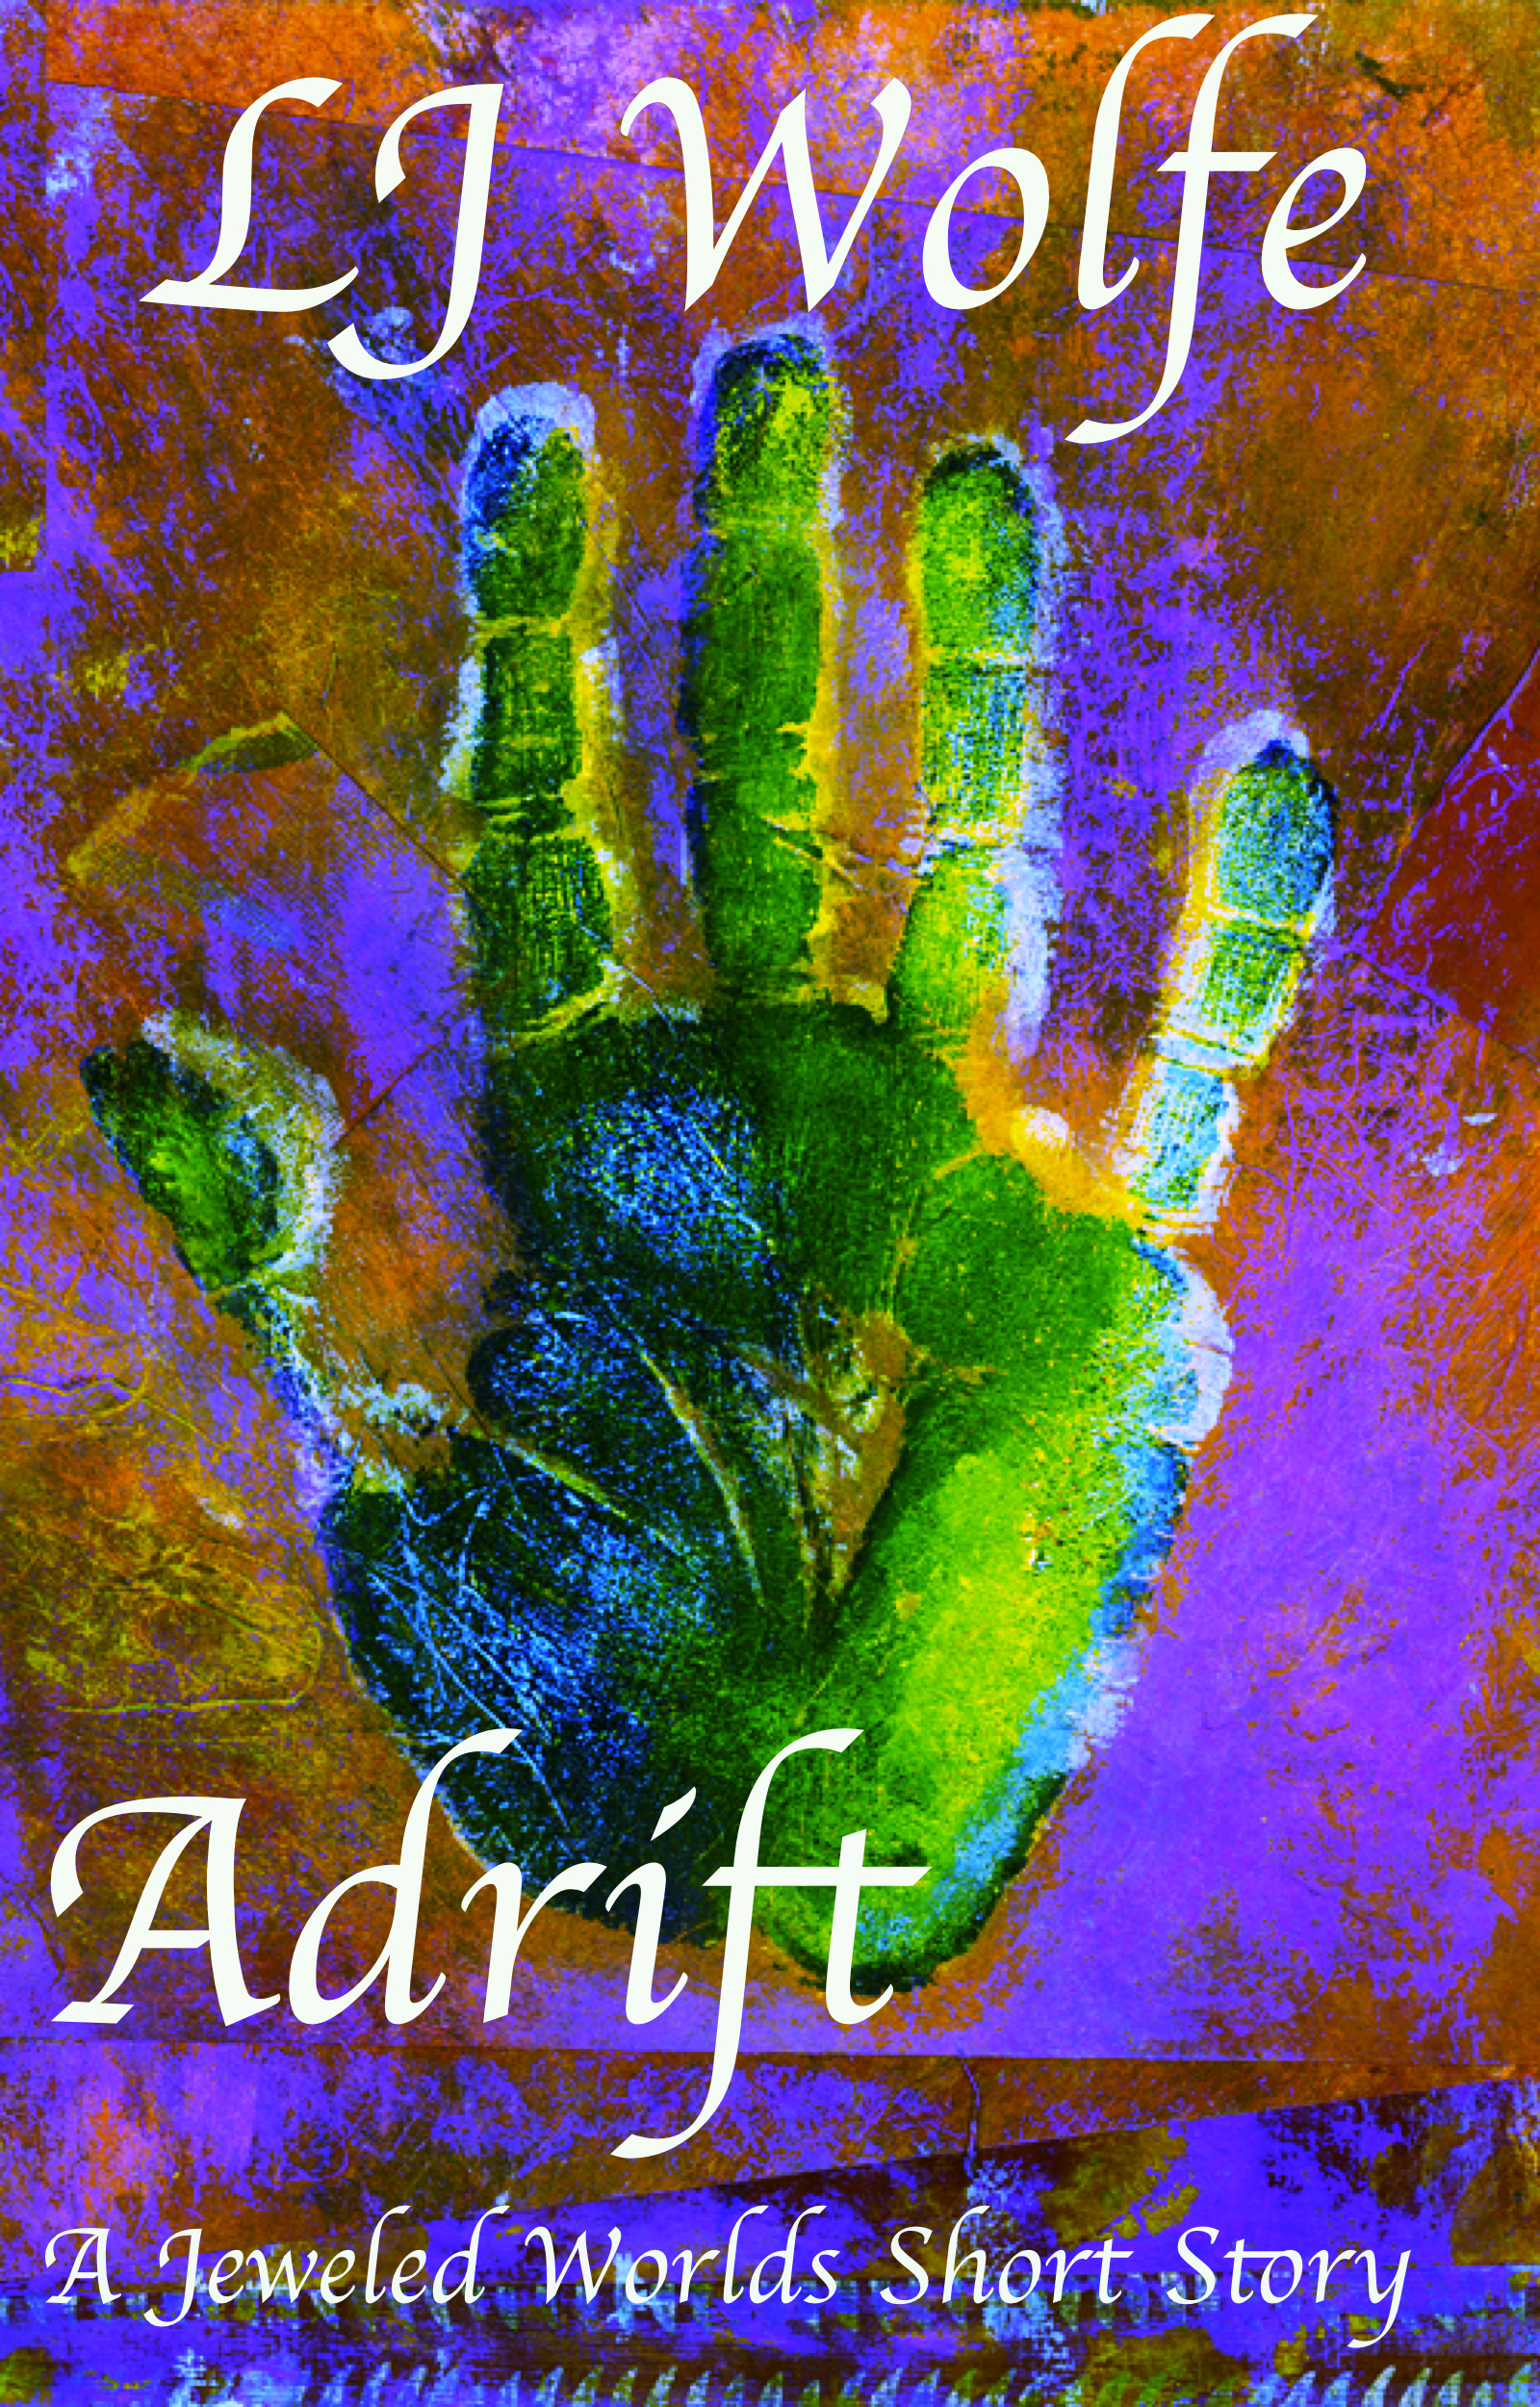 Adrift: A Jeweled Worlds Short Story